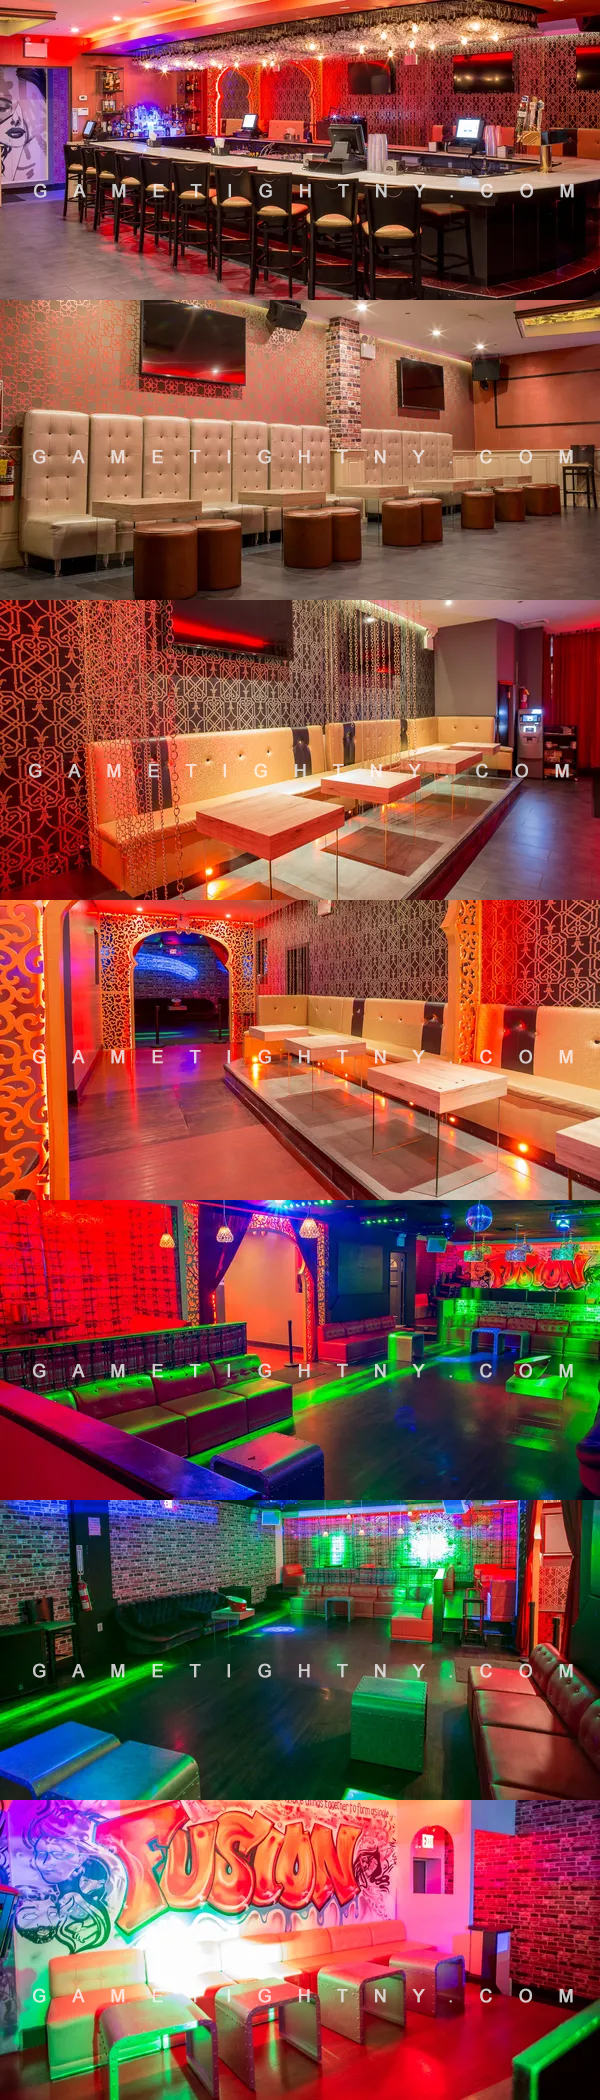 Birthday Package at Fusion Lounge NY | GametightNY.com